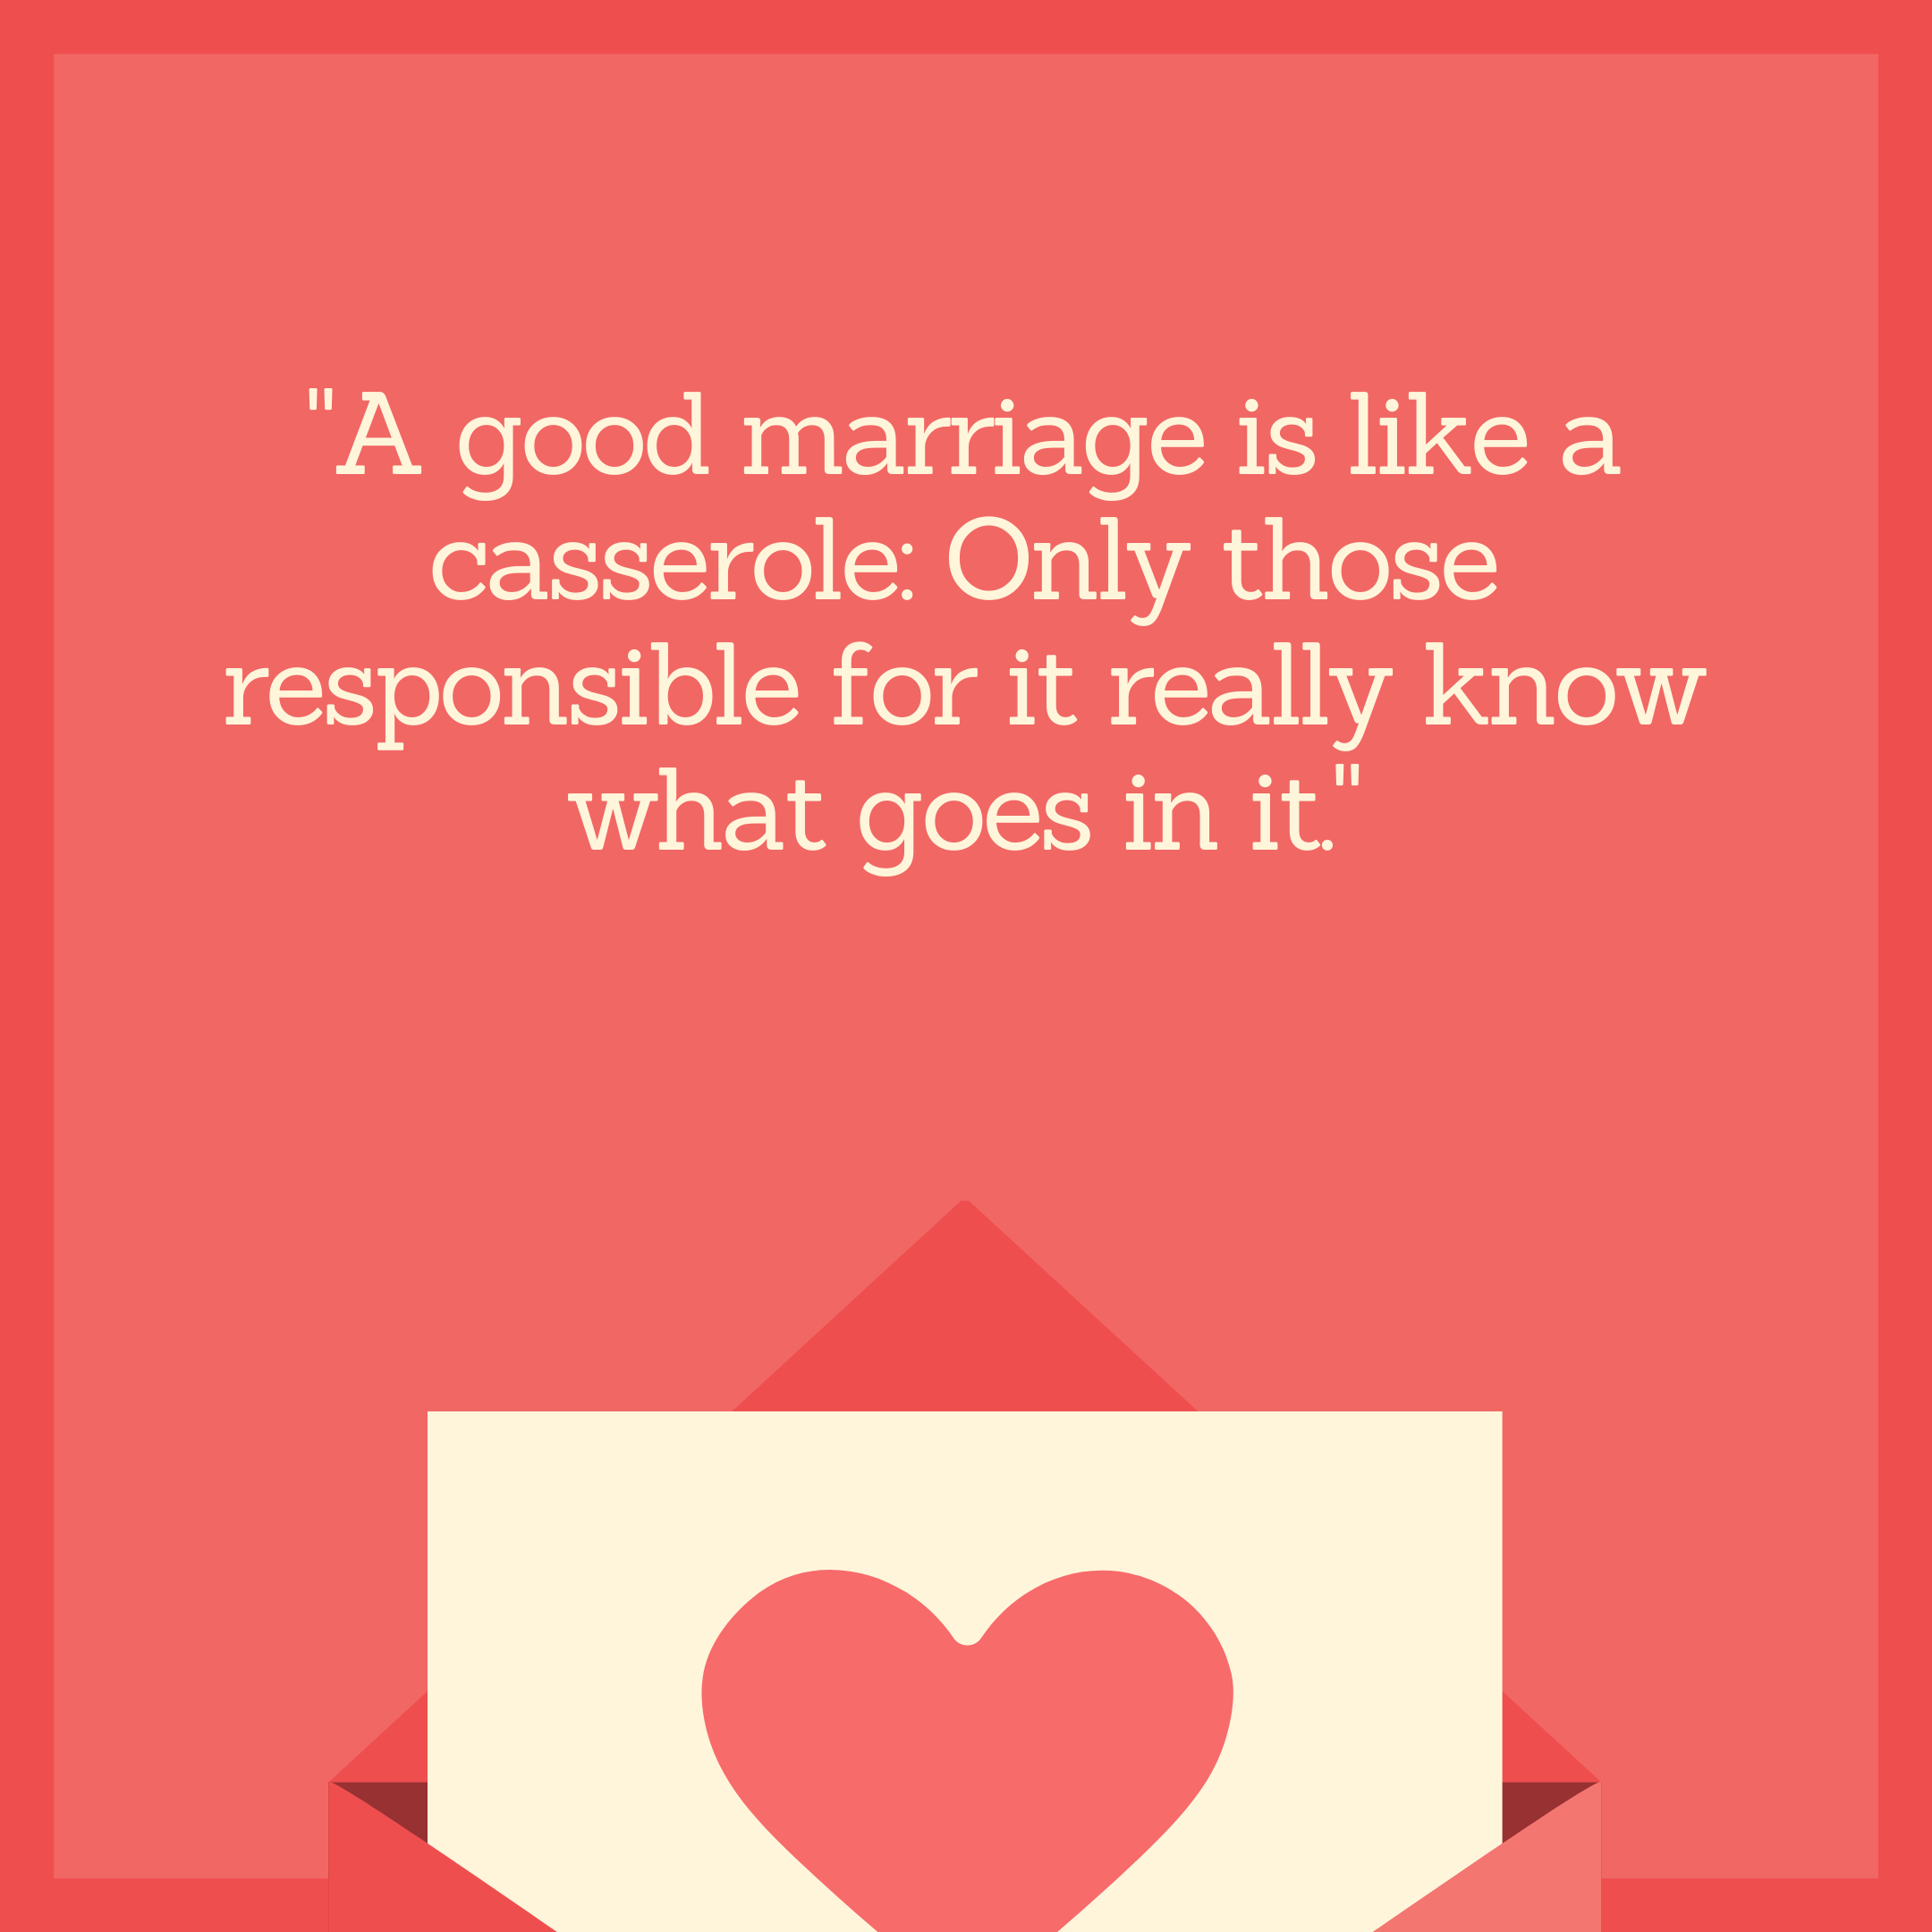 """A good marriage is like a casserole: Only those responsible for it really know what goes in it."""